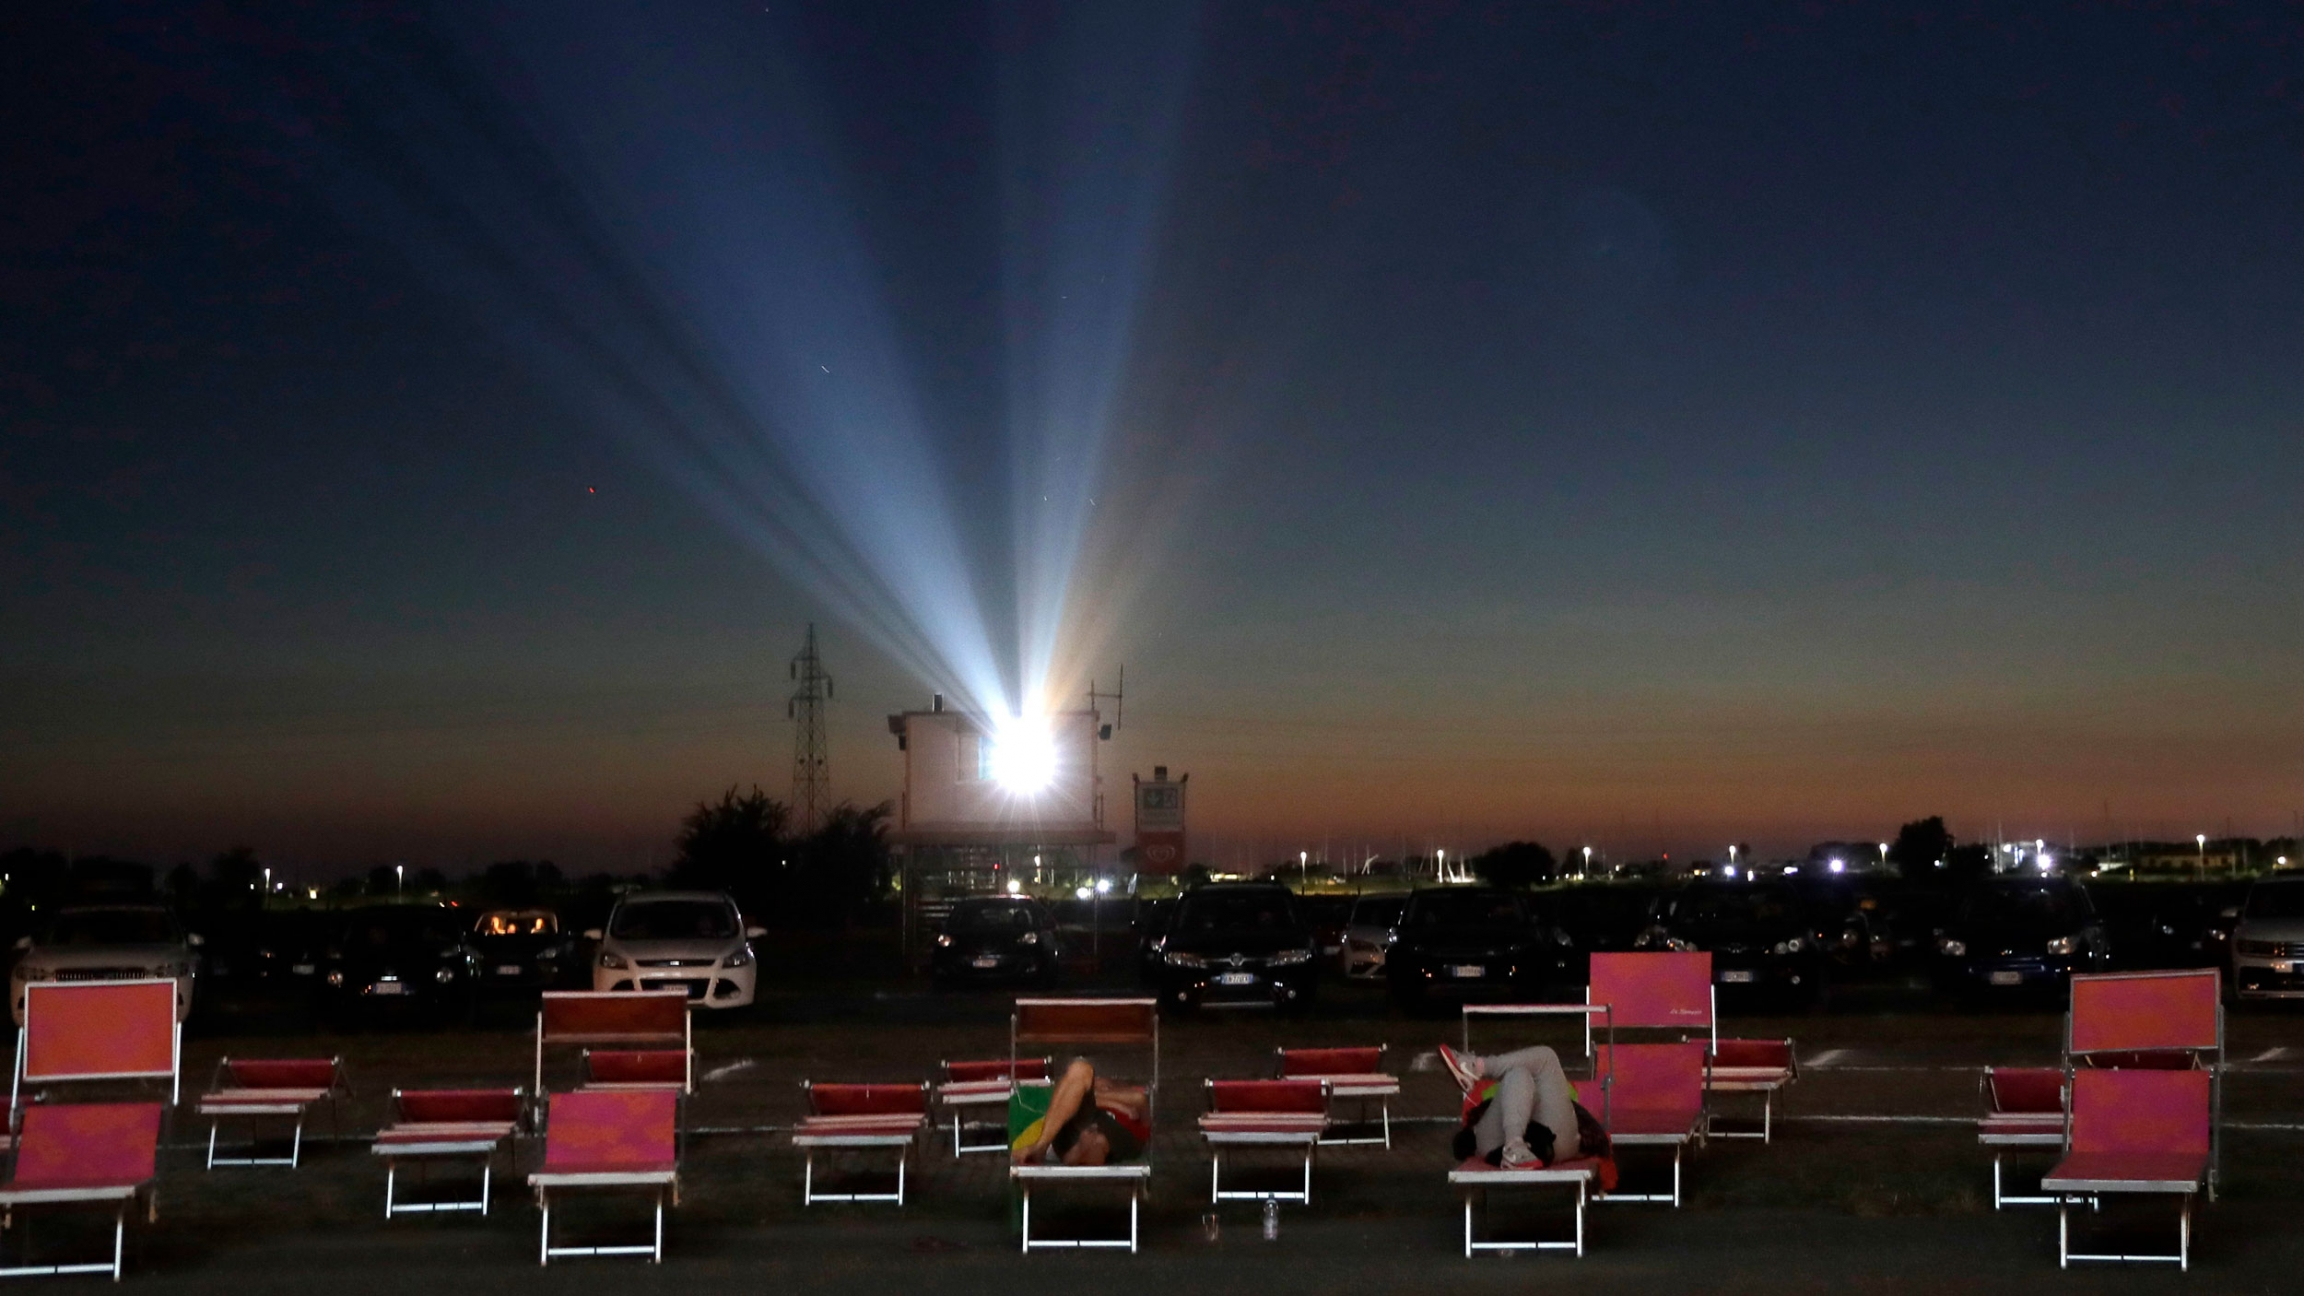 Several rows of outdoor seating are shown with cars in the distance and a movie project shining bright in the distance.